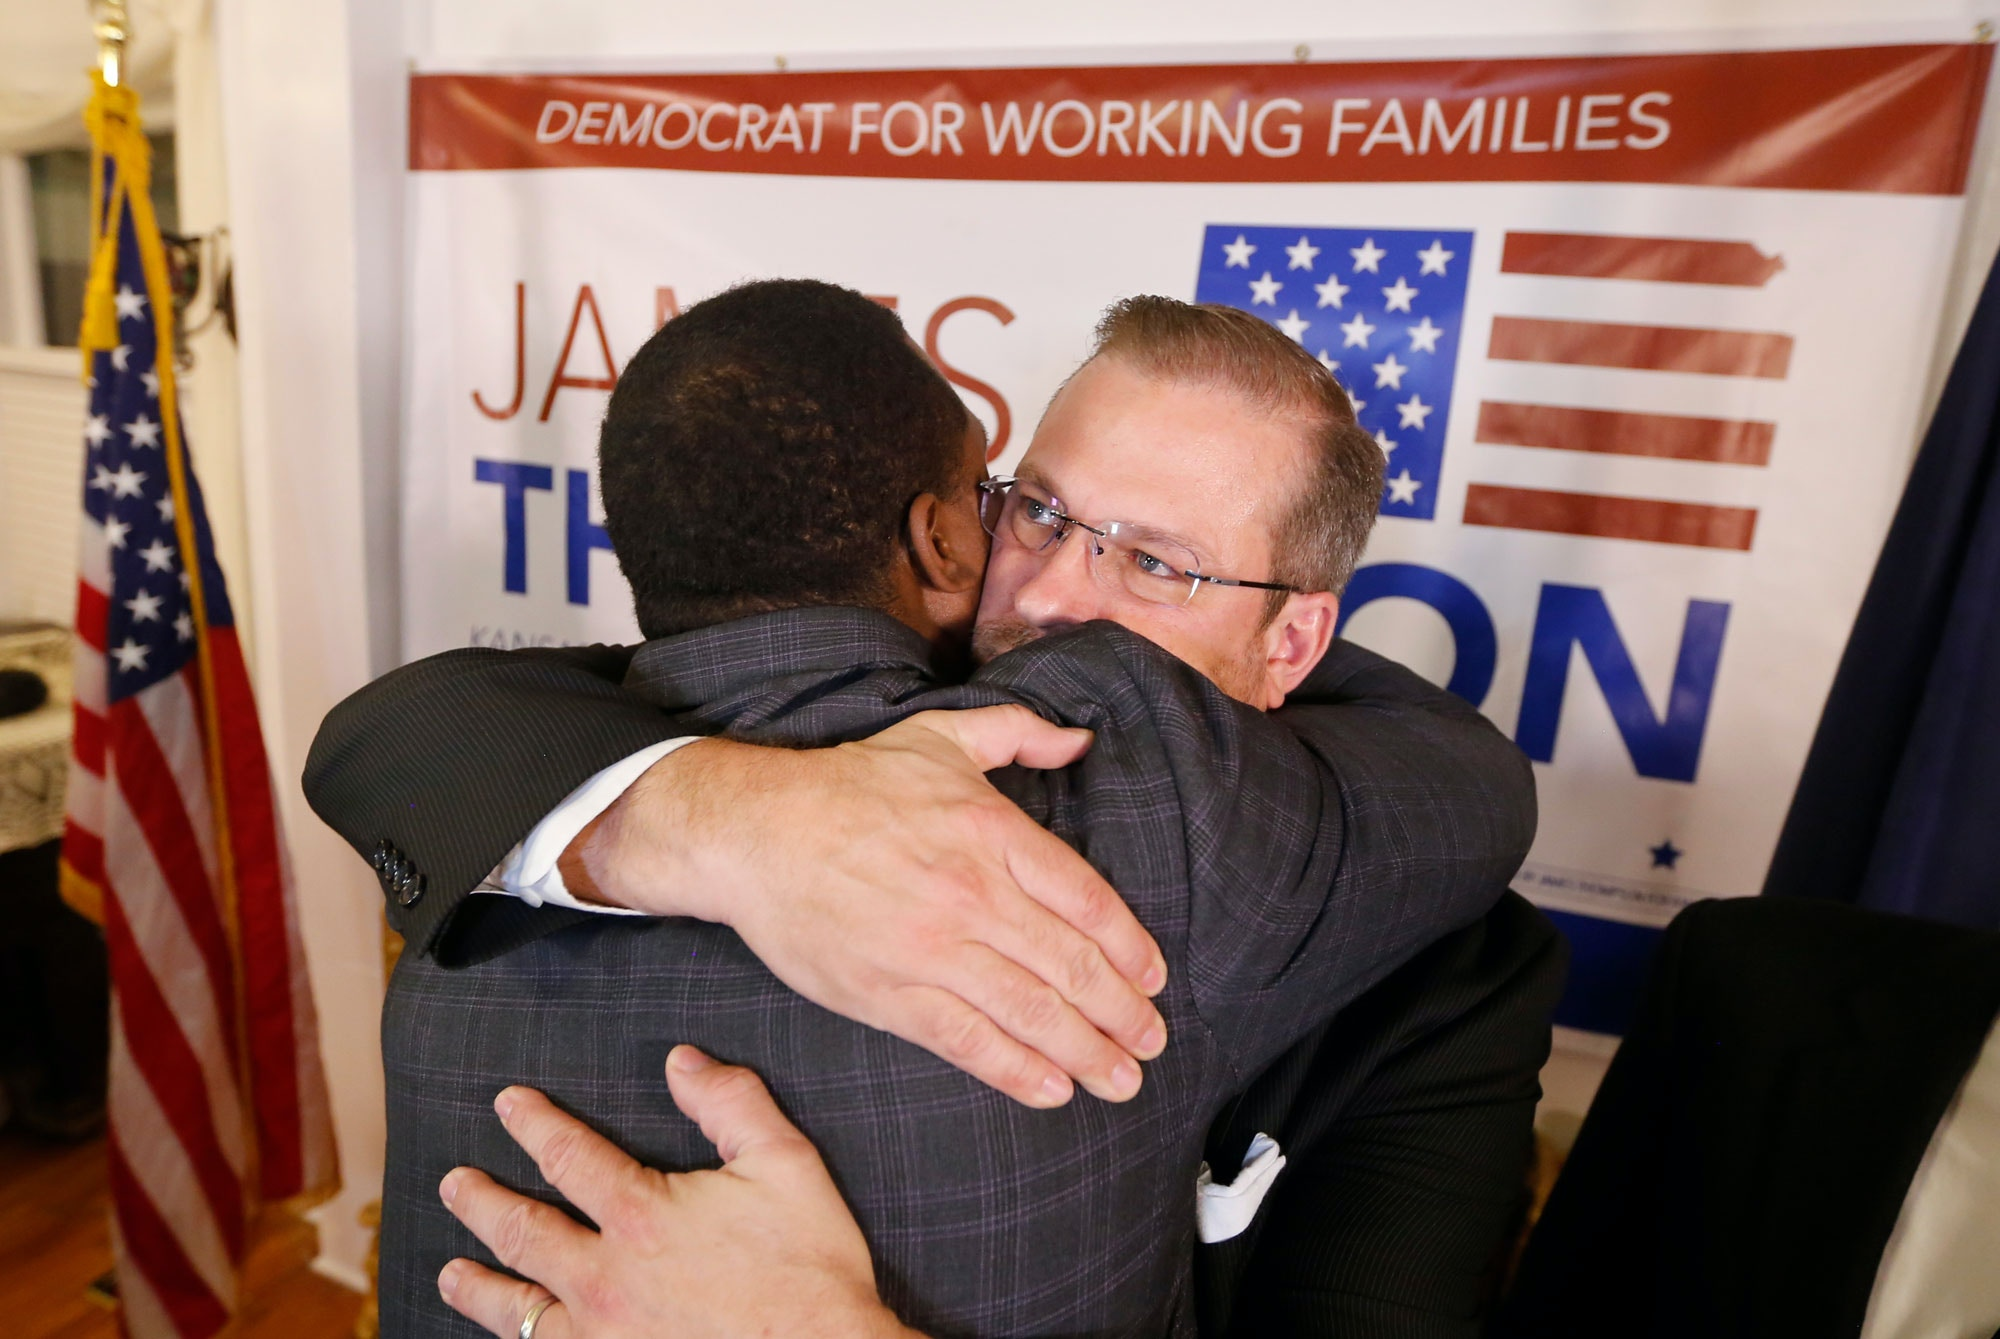 Democrat James Thompson gets a hug from supporter Djuan Wash at the Murdock Theatre in Wichita, Kan., Tuesday, April, 11, 2017. Thompson came up short in his bid to beat republican Ron Estes in a special election to replace current CIA director, and former U.S. Rep Mike Pompeo in the Kansas 4th congressional district. (Travis Heying/The Wichita Eagle via AP)